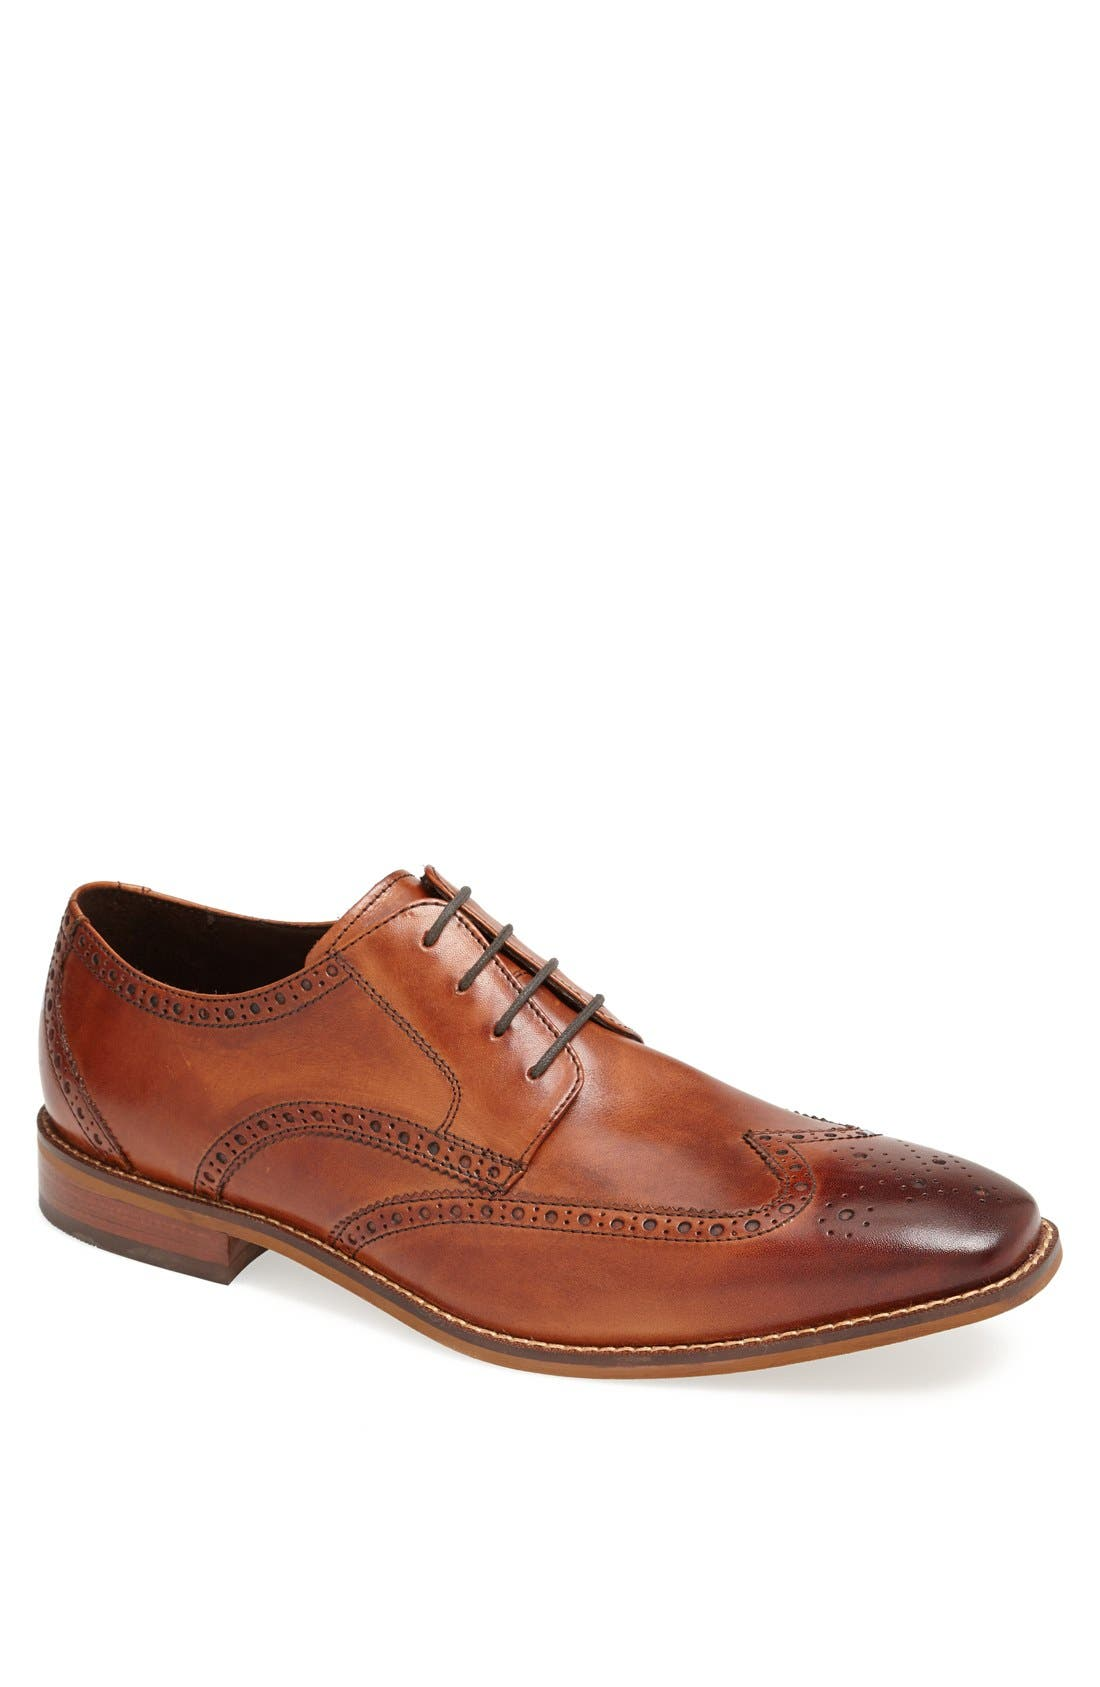 Main Image - Florsheim 'Castellano' Wingtip (Men)